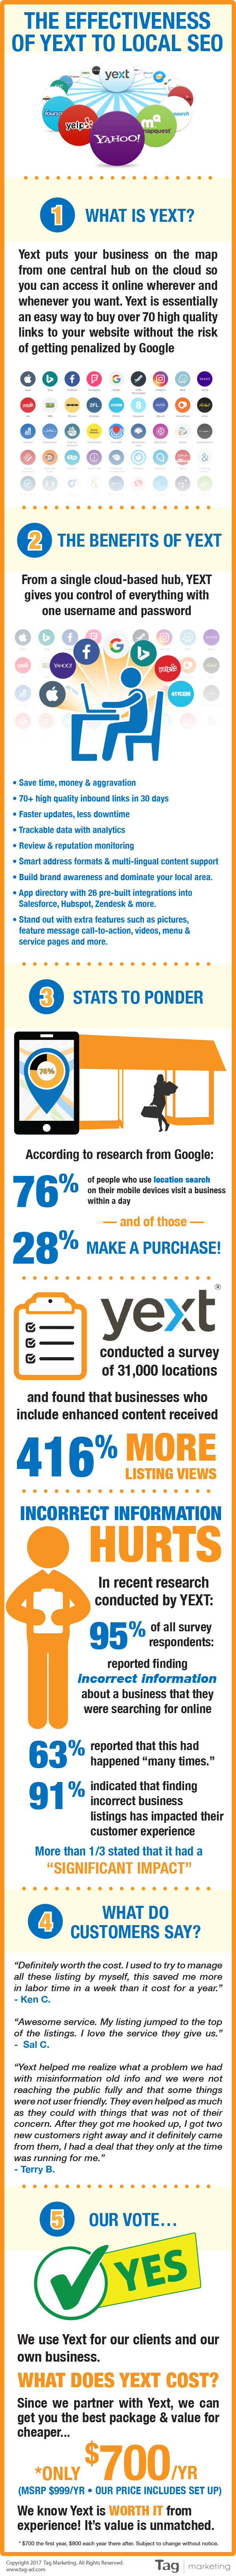 How Effective Is Yext for Local SEO Campaigns {Infographic}